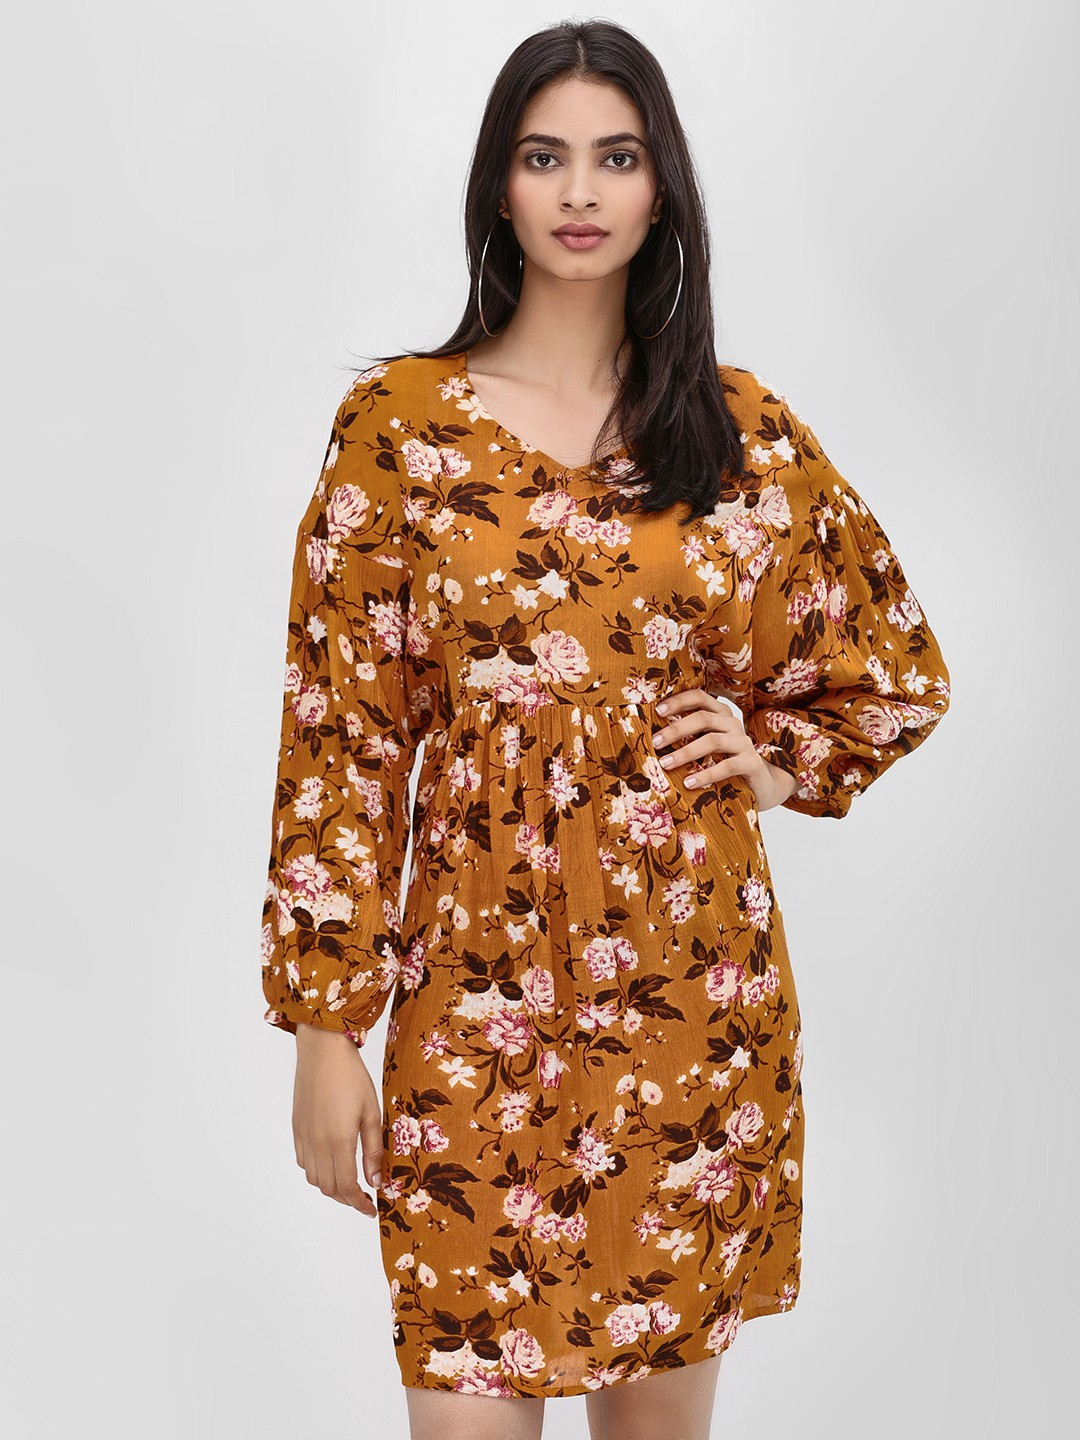 Kisscoast Print Floral Printed Shift Dress 1